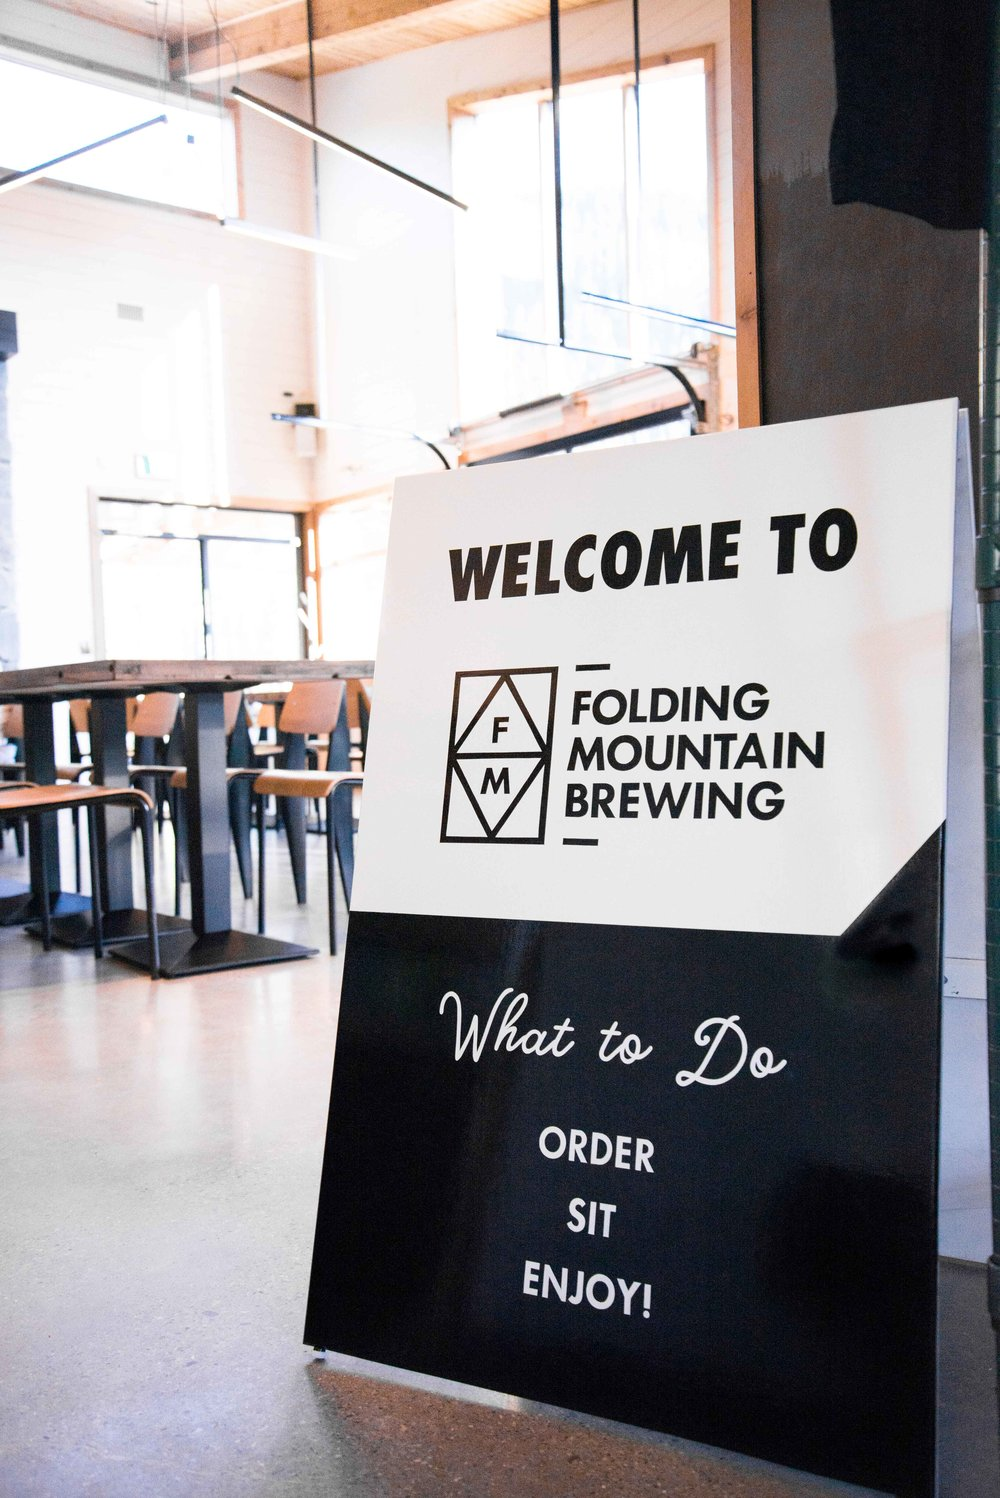 Folding-Mountain-Brewing-sign-2.jpg